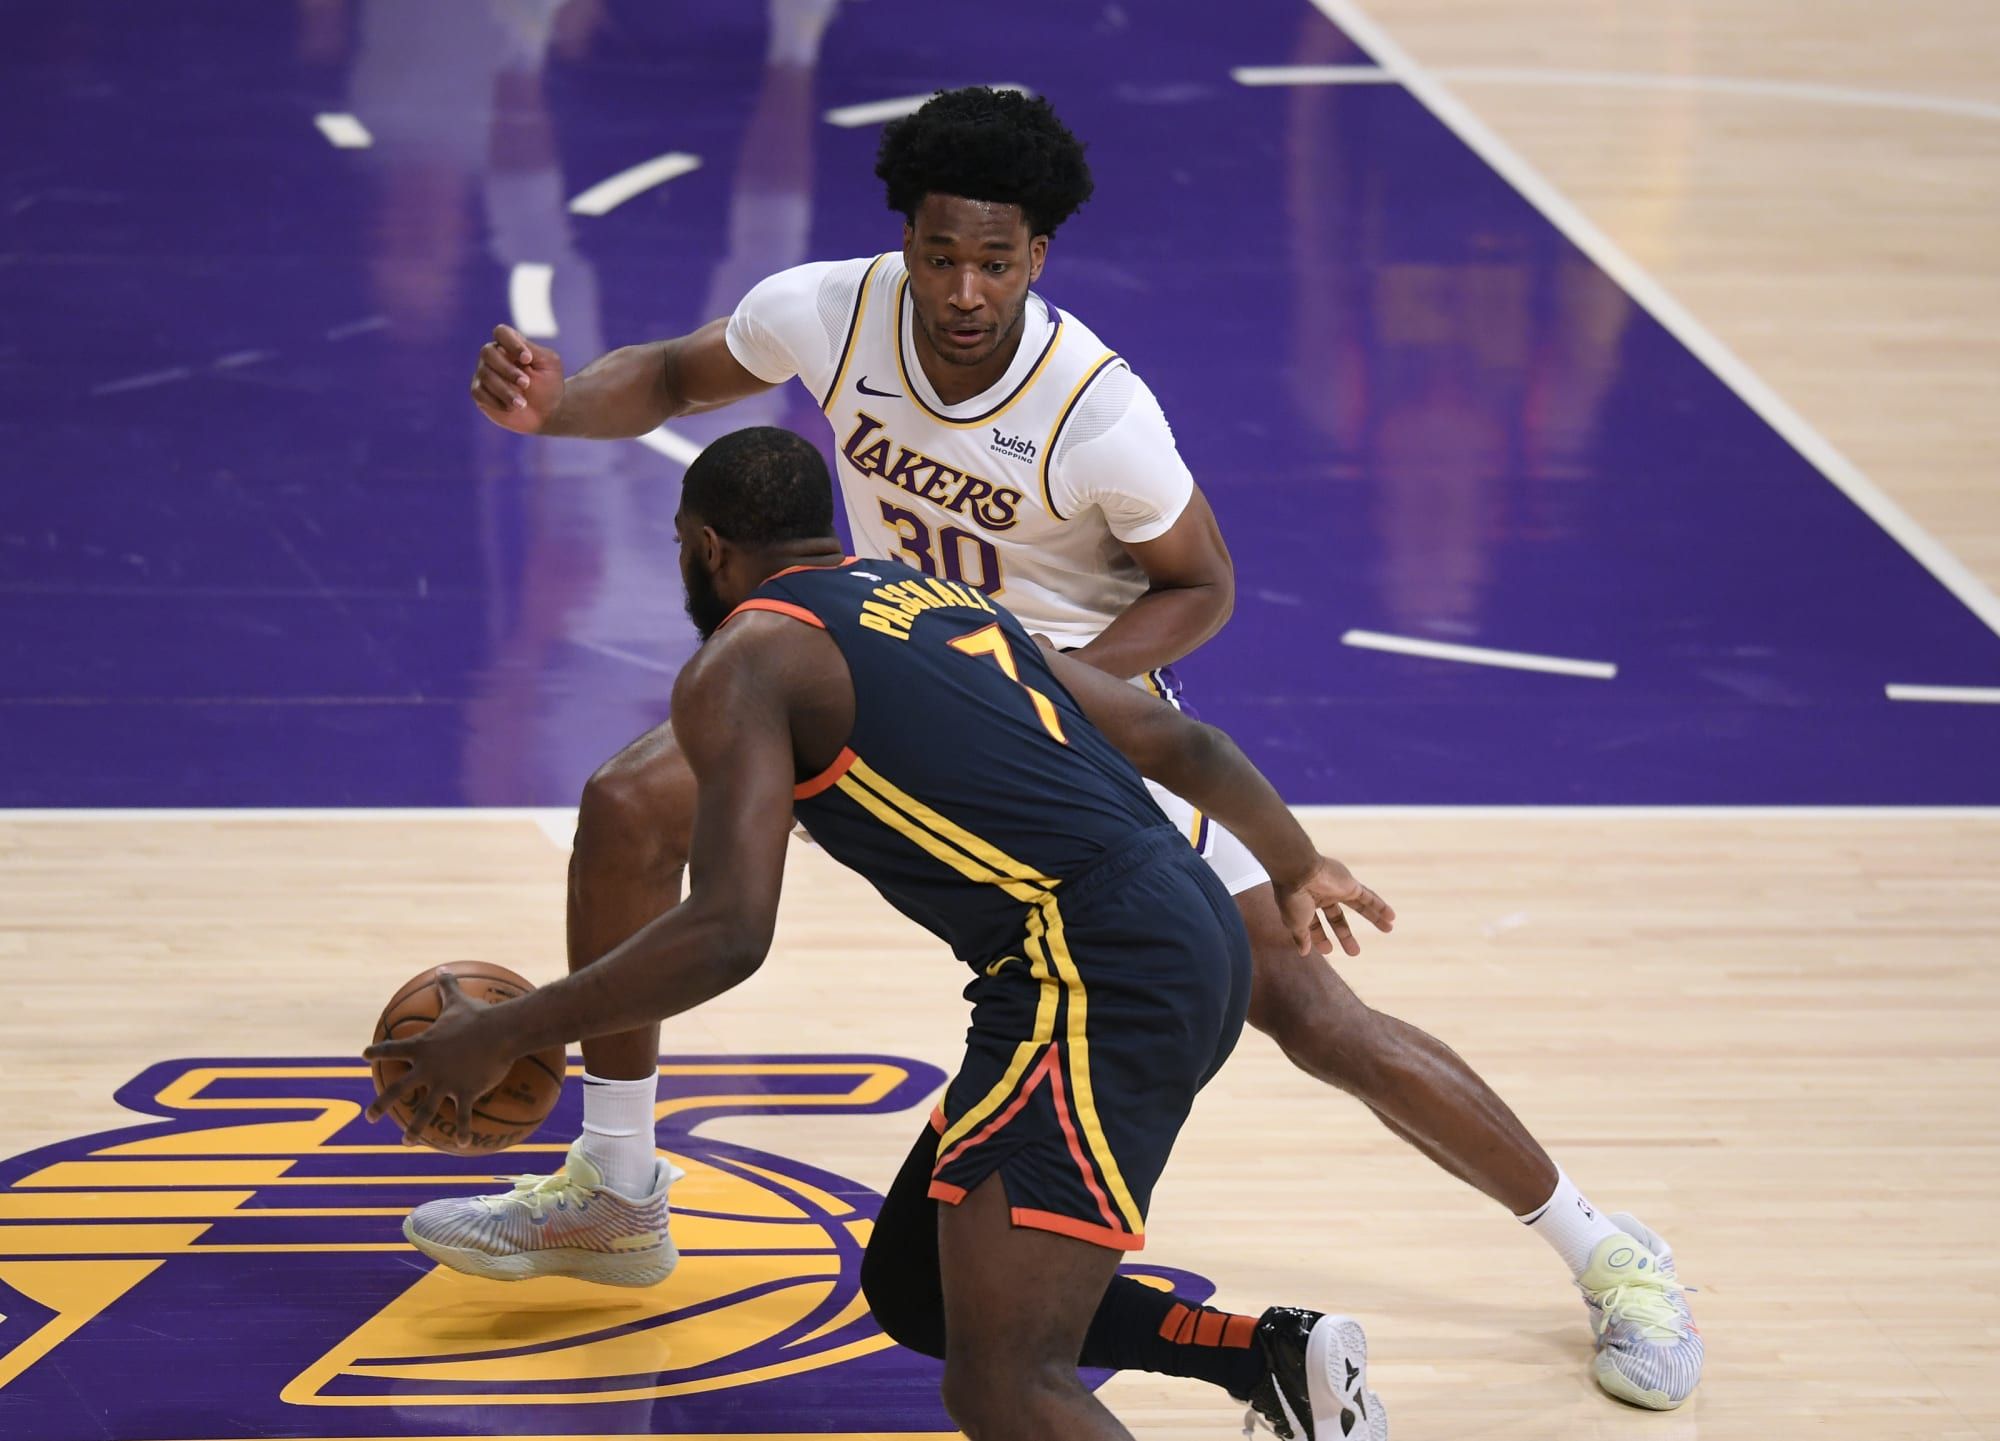 Los Angeles Lakers: Why Damian Jones' tenure will be short - Lakeshow Life